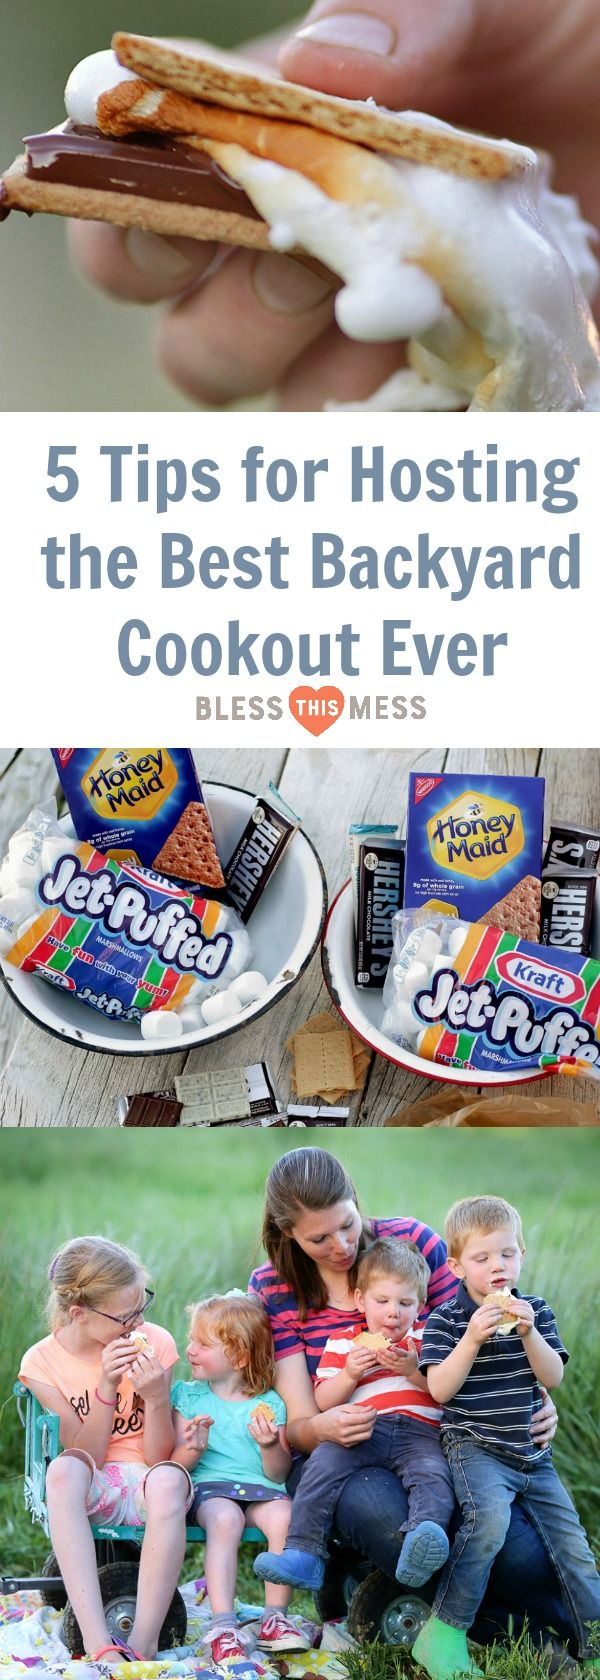 5 Tips for Hosting the Best Backyard Cookout Ever ShareSmore #AD @HoneyMaidSnacks HERSHEY'S Chocolate @KraftJetPuffed